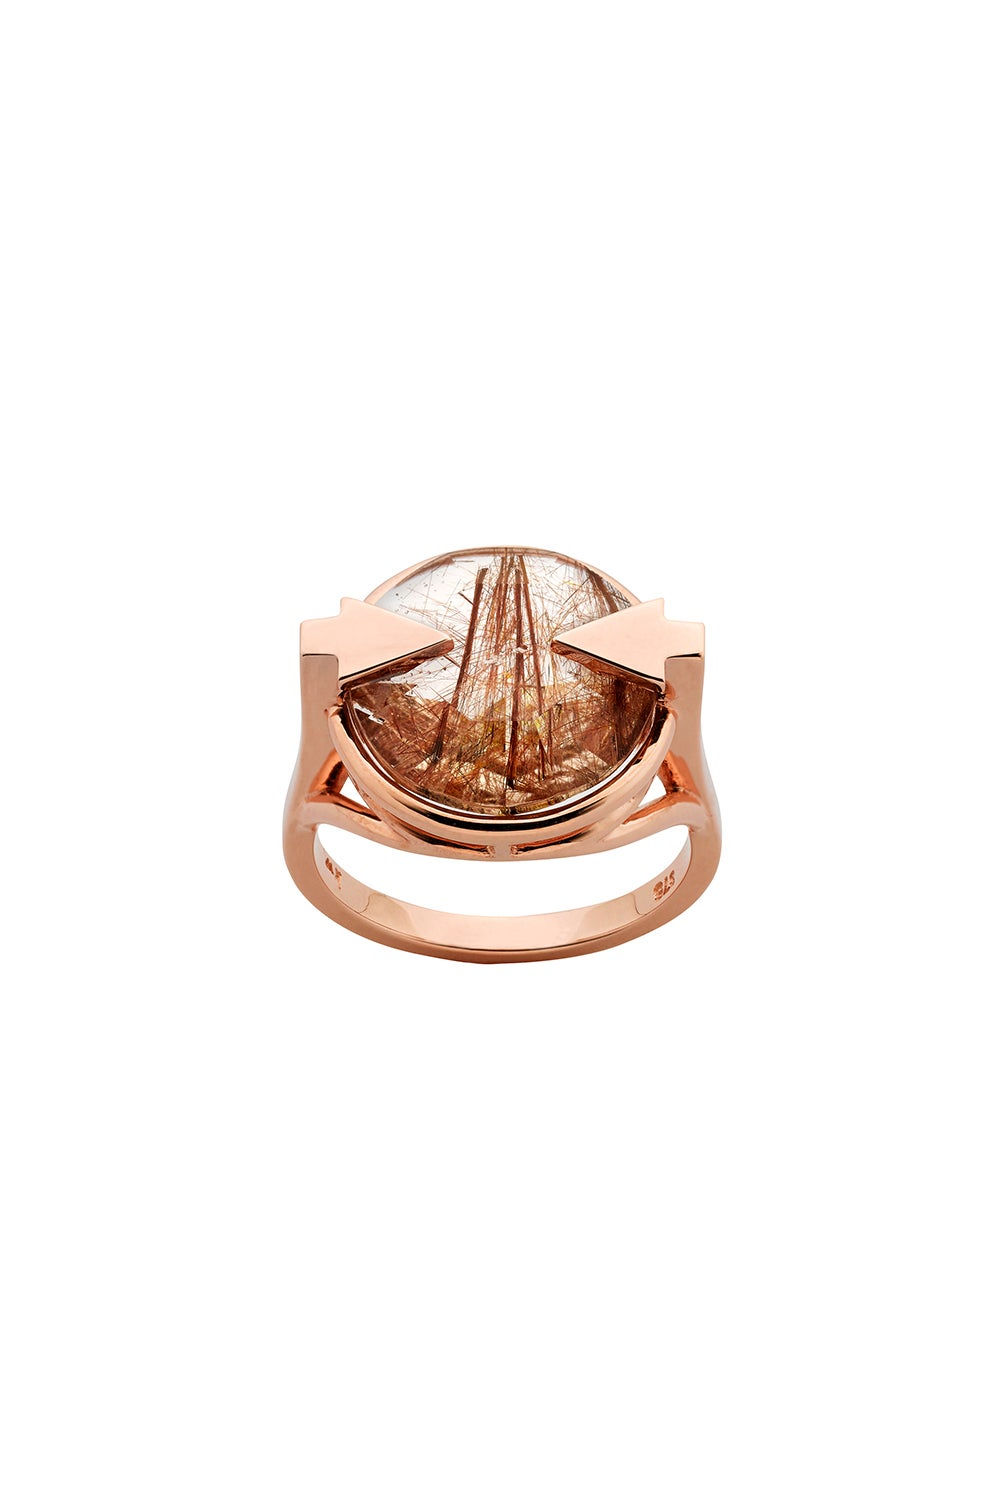 Navigator Ring with 14mm Round Rutilated Quartz Rose Gold